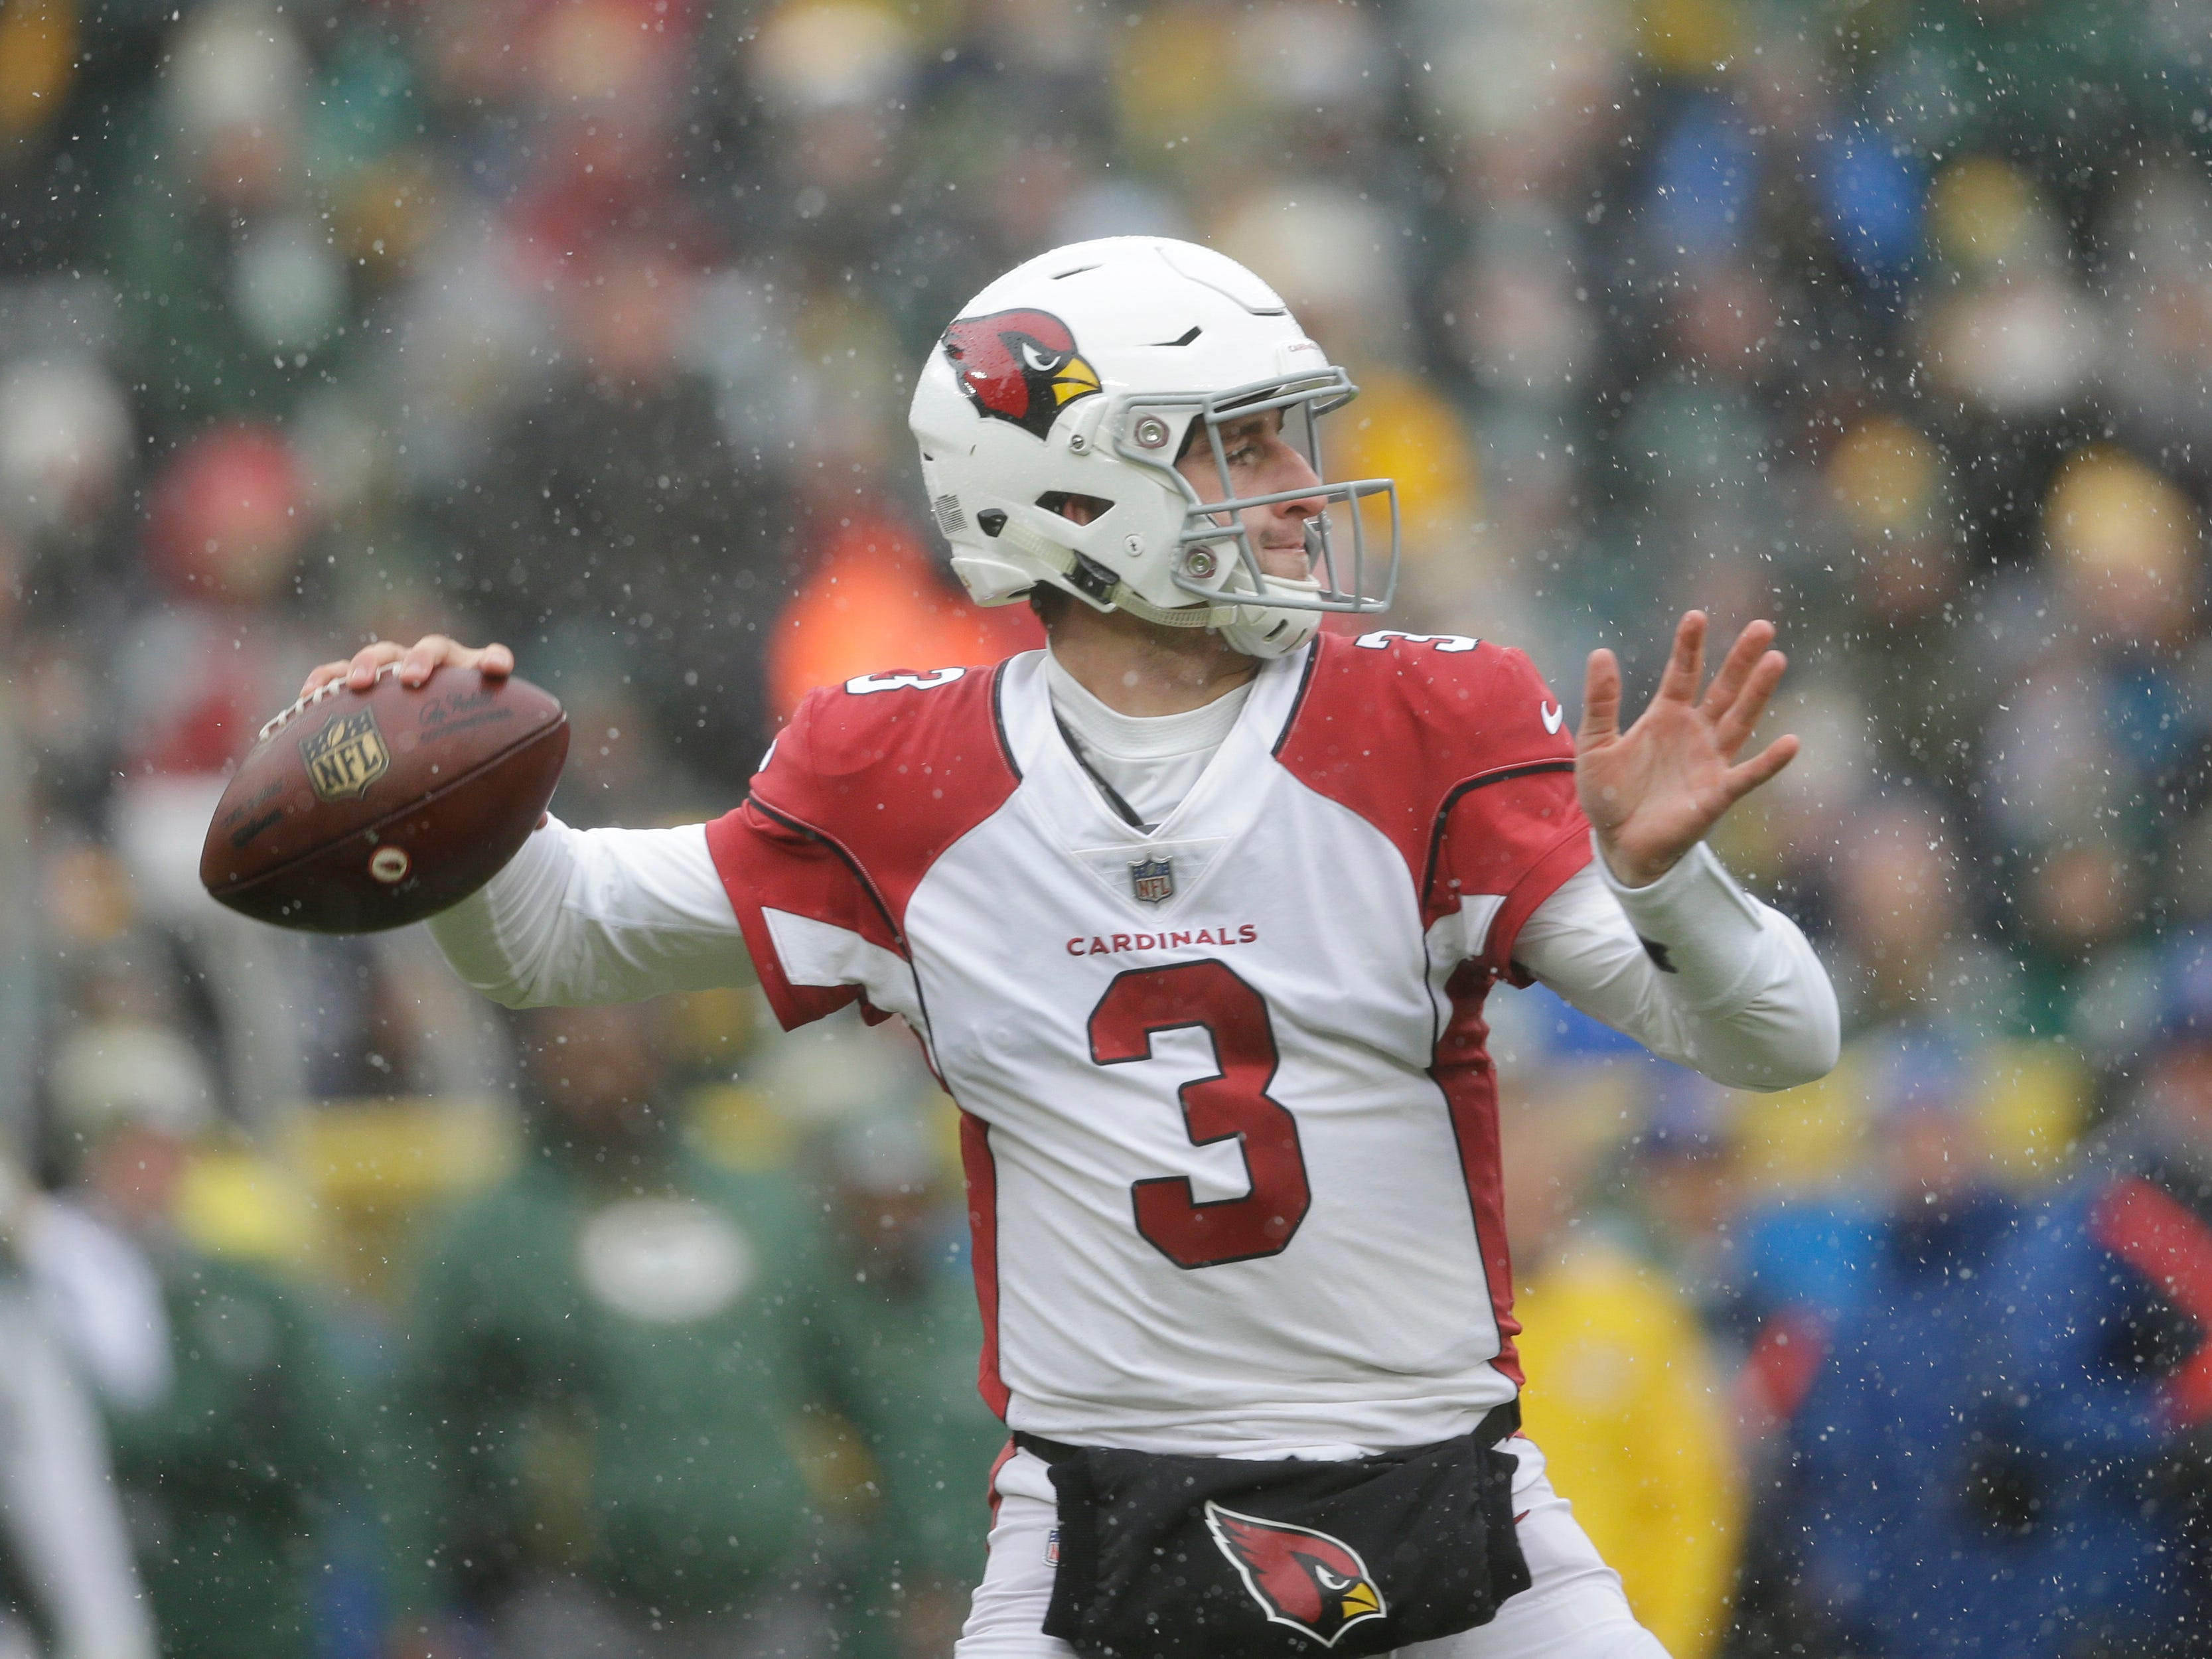 Arizona Cardinals quarterback Josh Rosen looks to pass during the first half of an NFL football game against the Green Bay Packers Sunday, Dec. 2, 2018, in Green Bay, Wis. (AP Photo/Jeffrey Phelps)